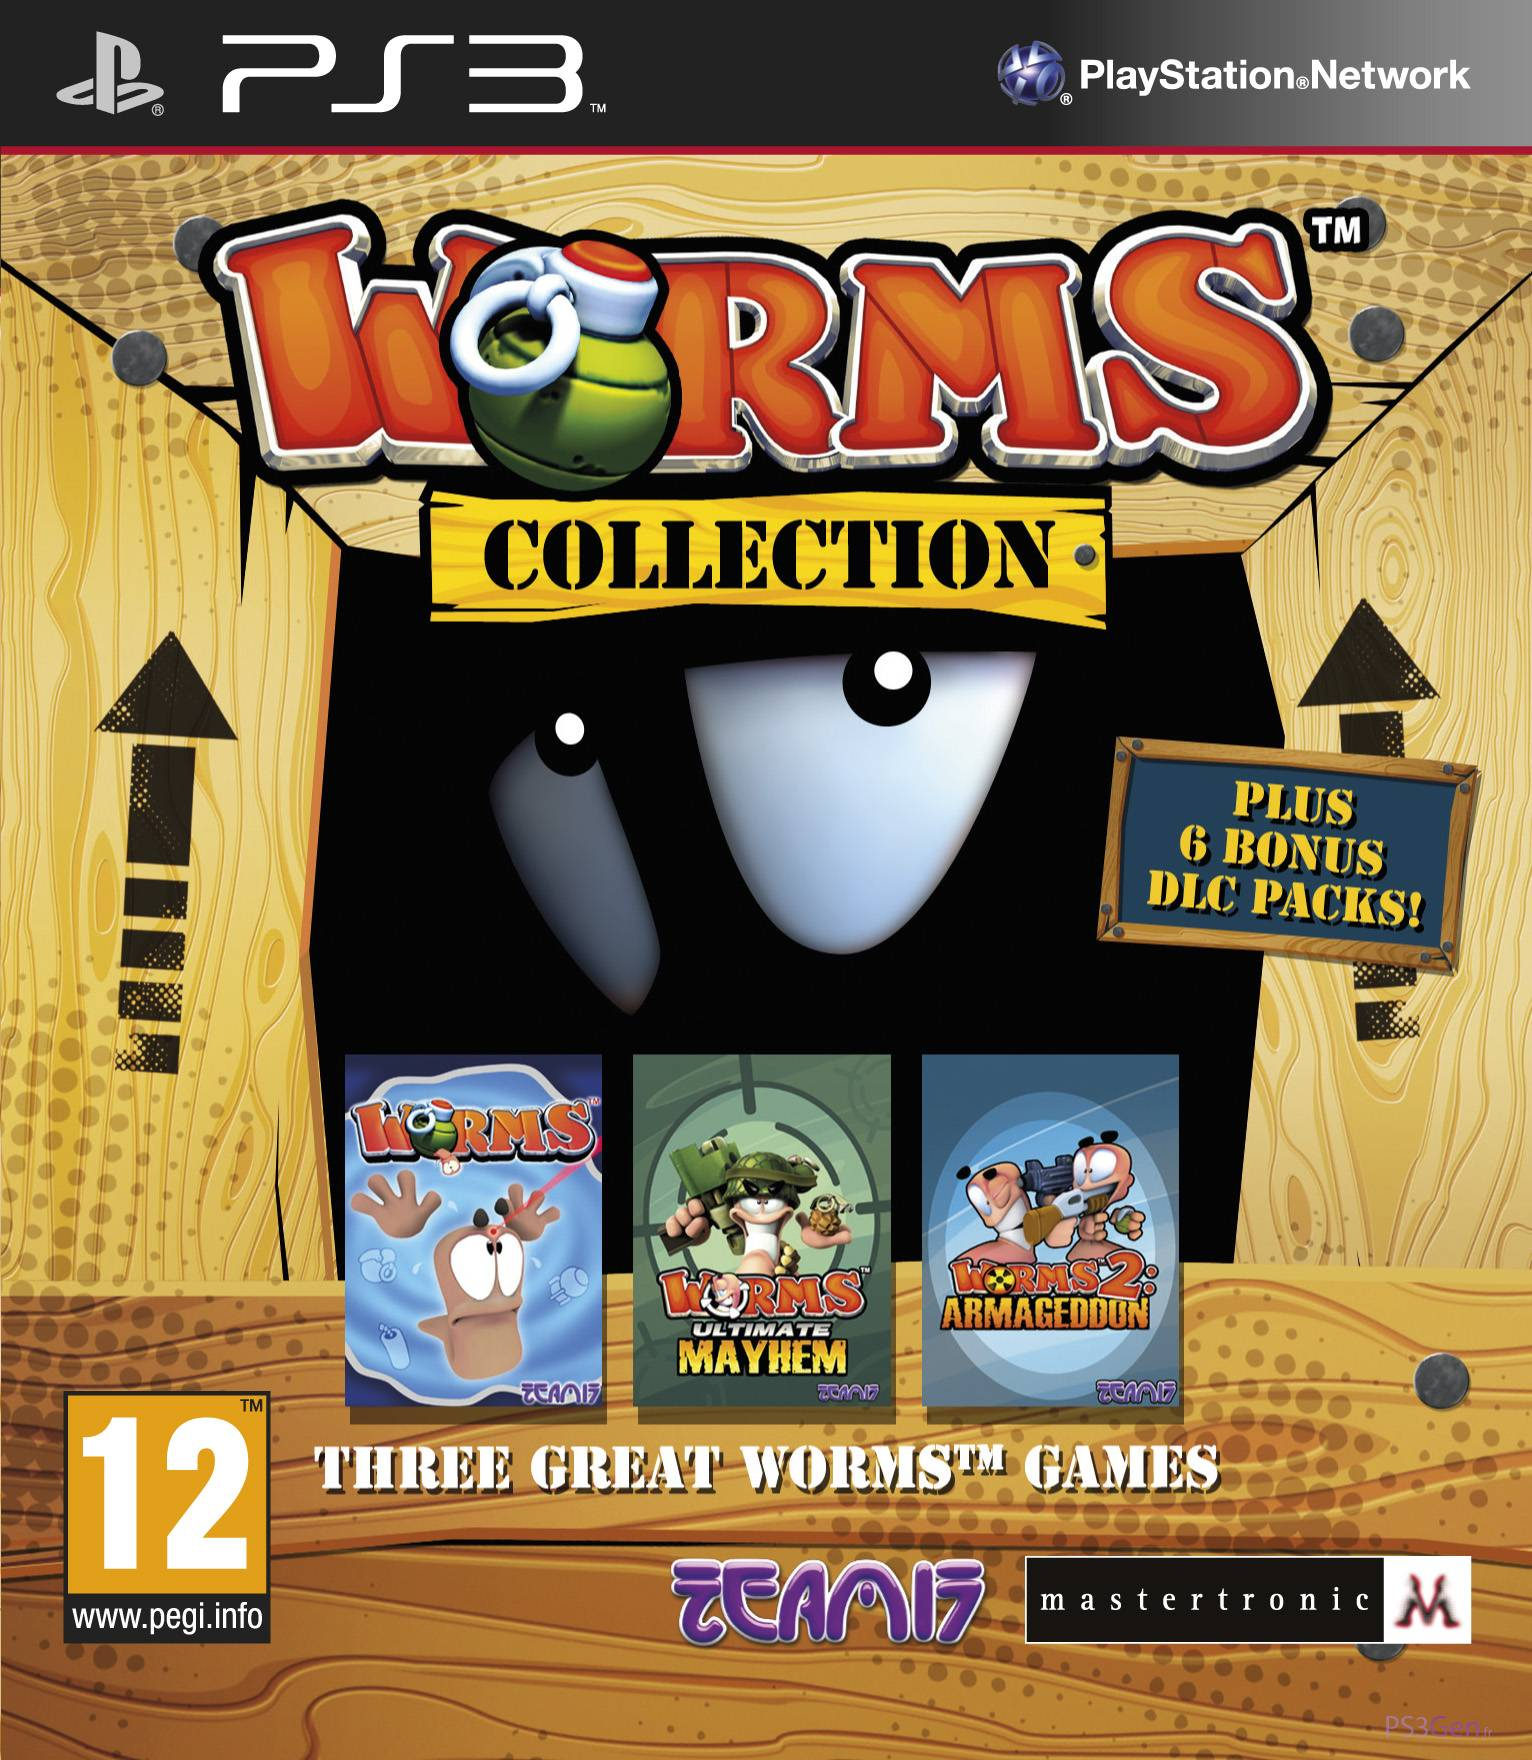 Worms Collection | Worms Wiki | FANDOM powered by Wikia